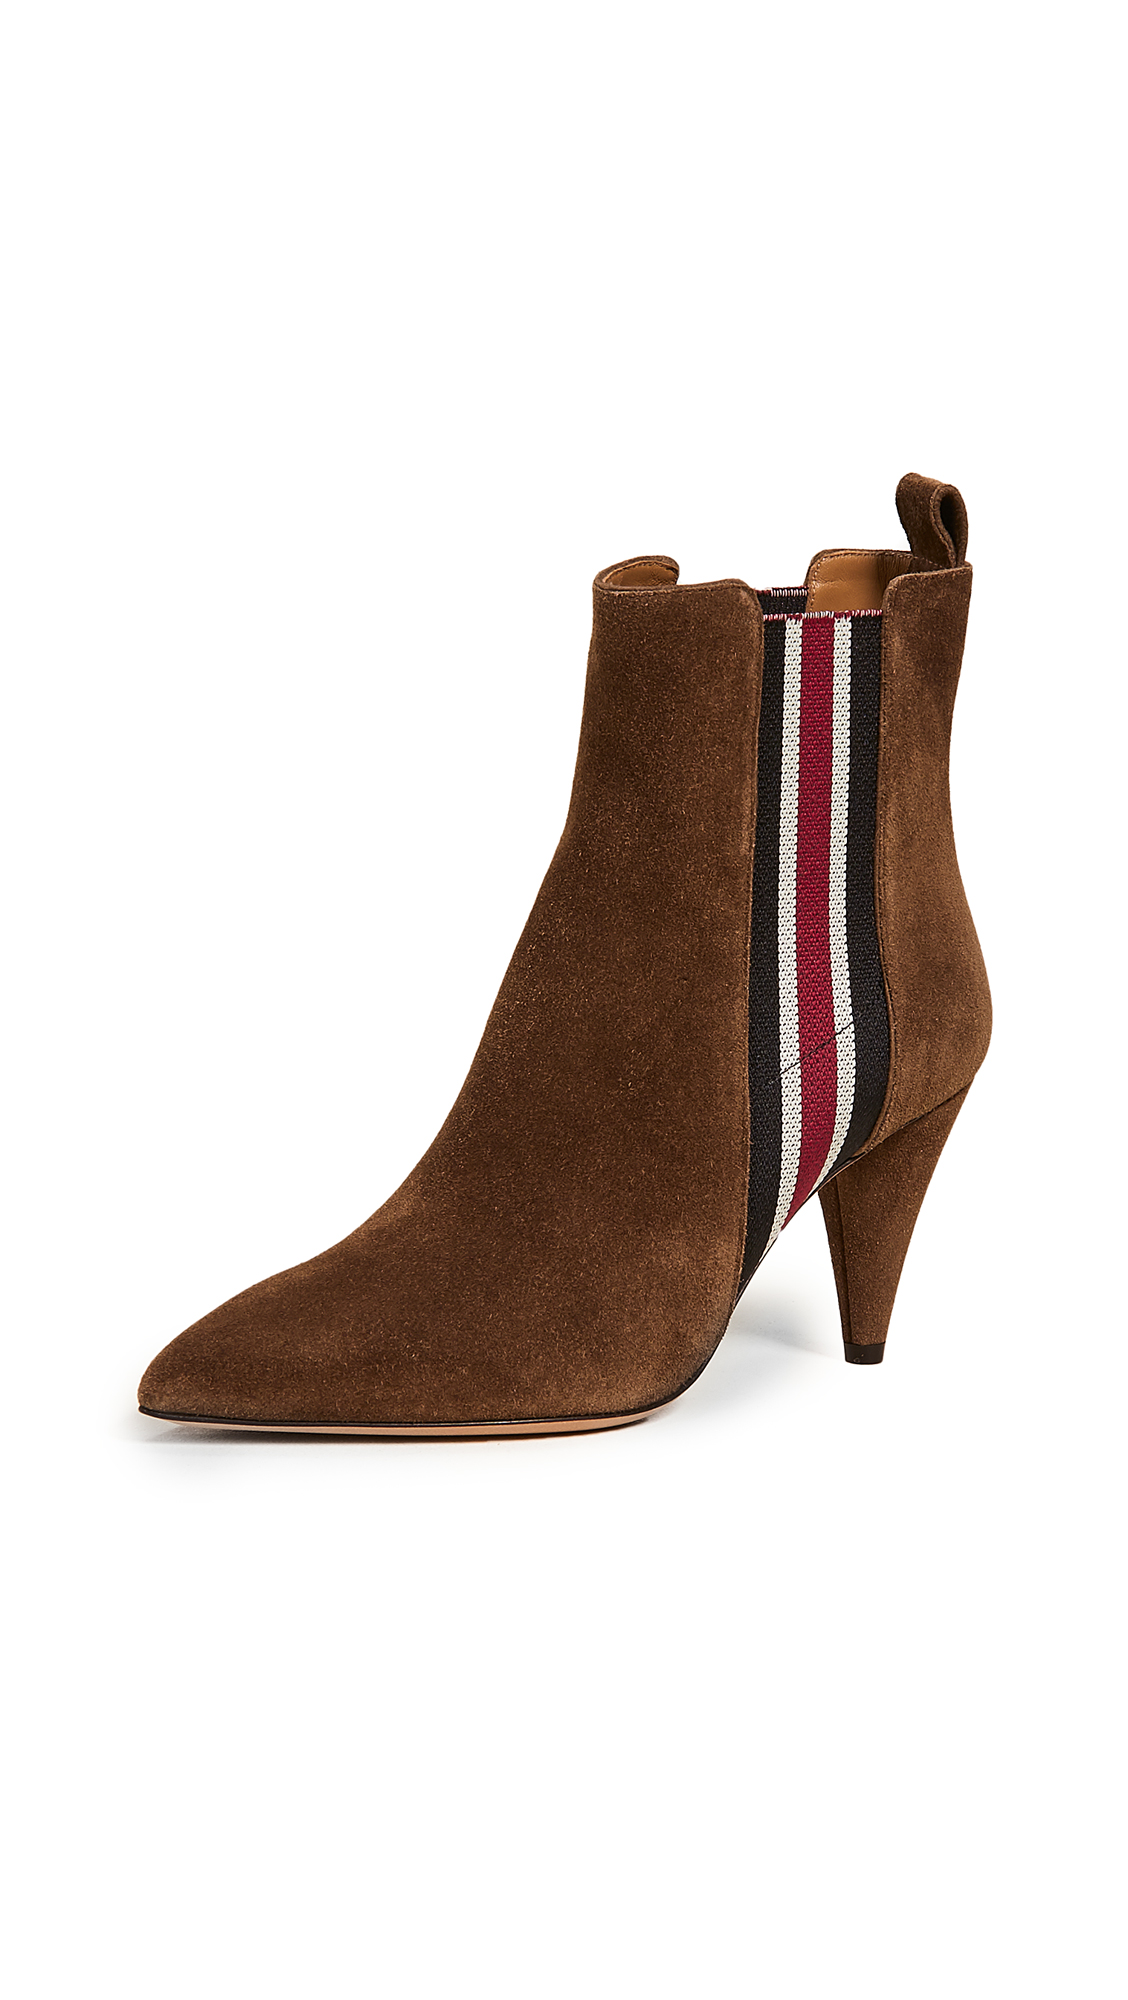 Veronica Beard Flynne Suede Booties - Coconut